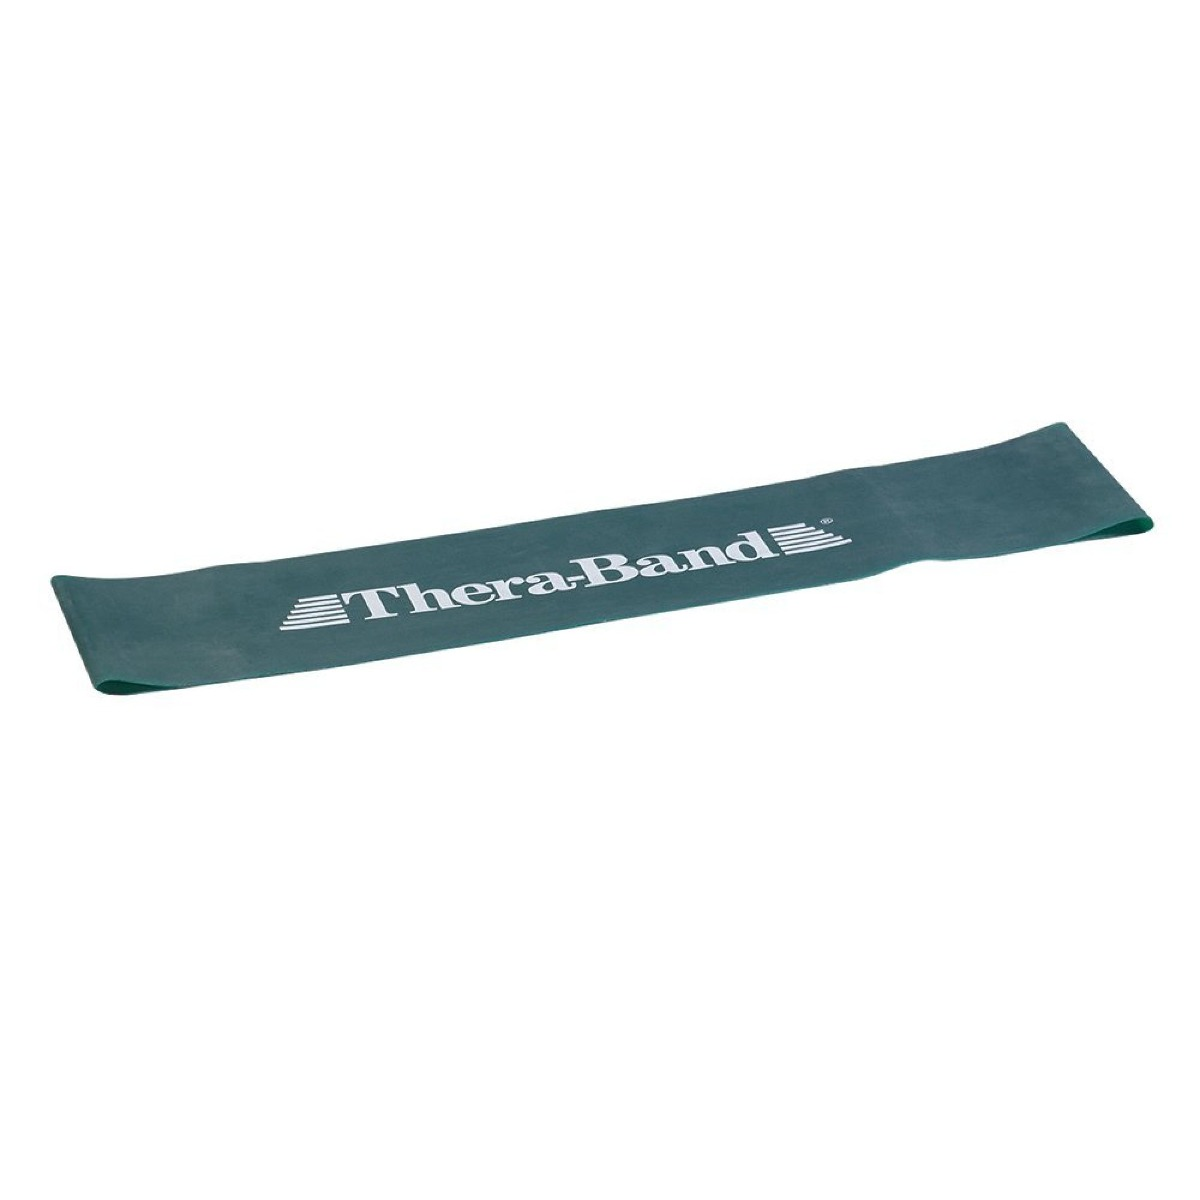 "TheraBand Loops, 18"" Flat, Level 3, Green, Heavy"